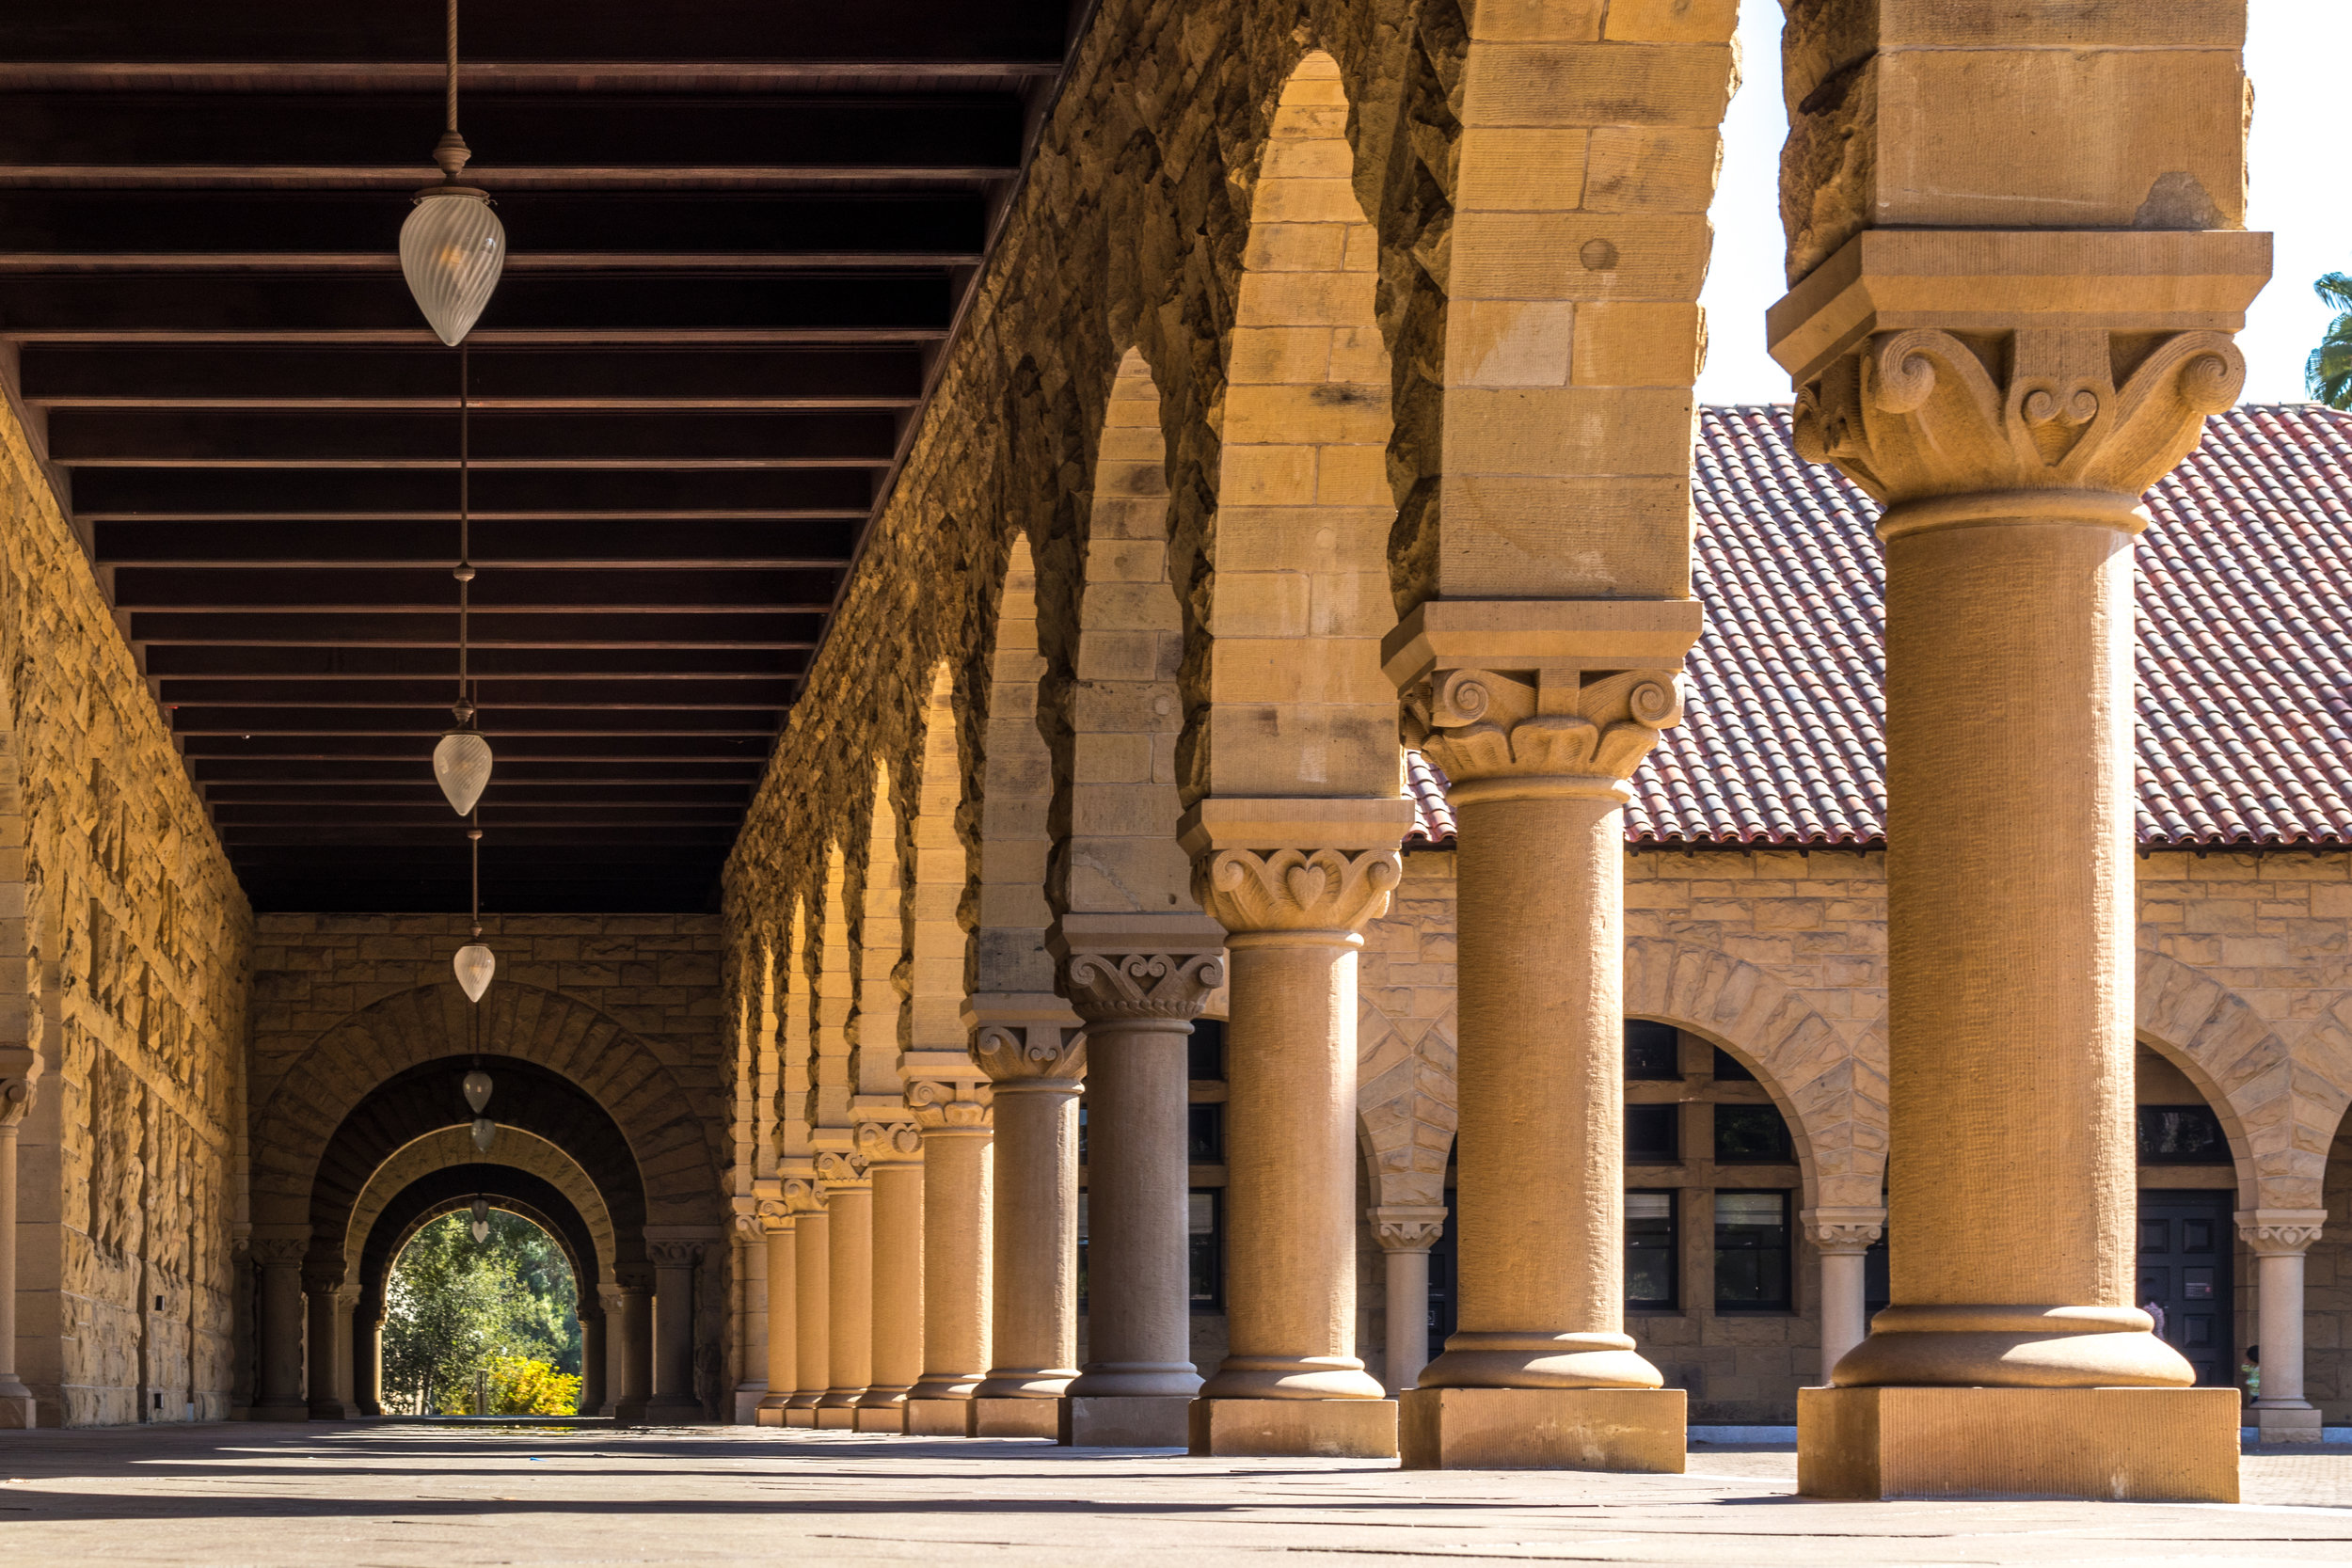 August 7, 2018 - Tips from a Stanford Admissions Officer